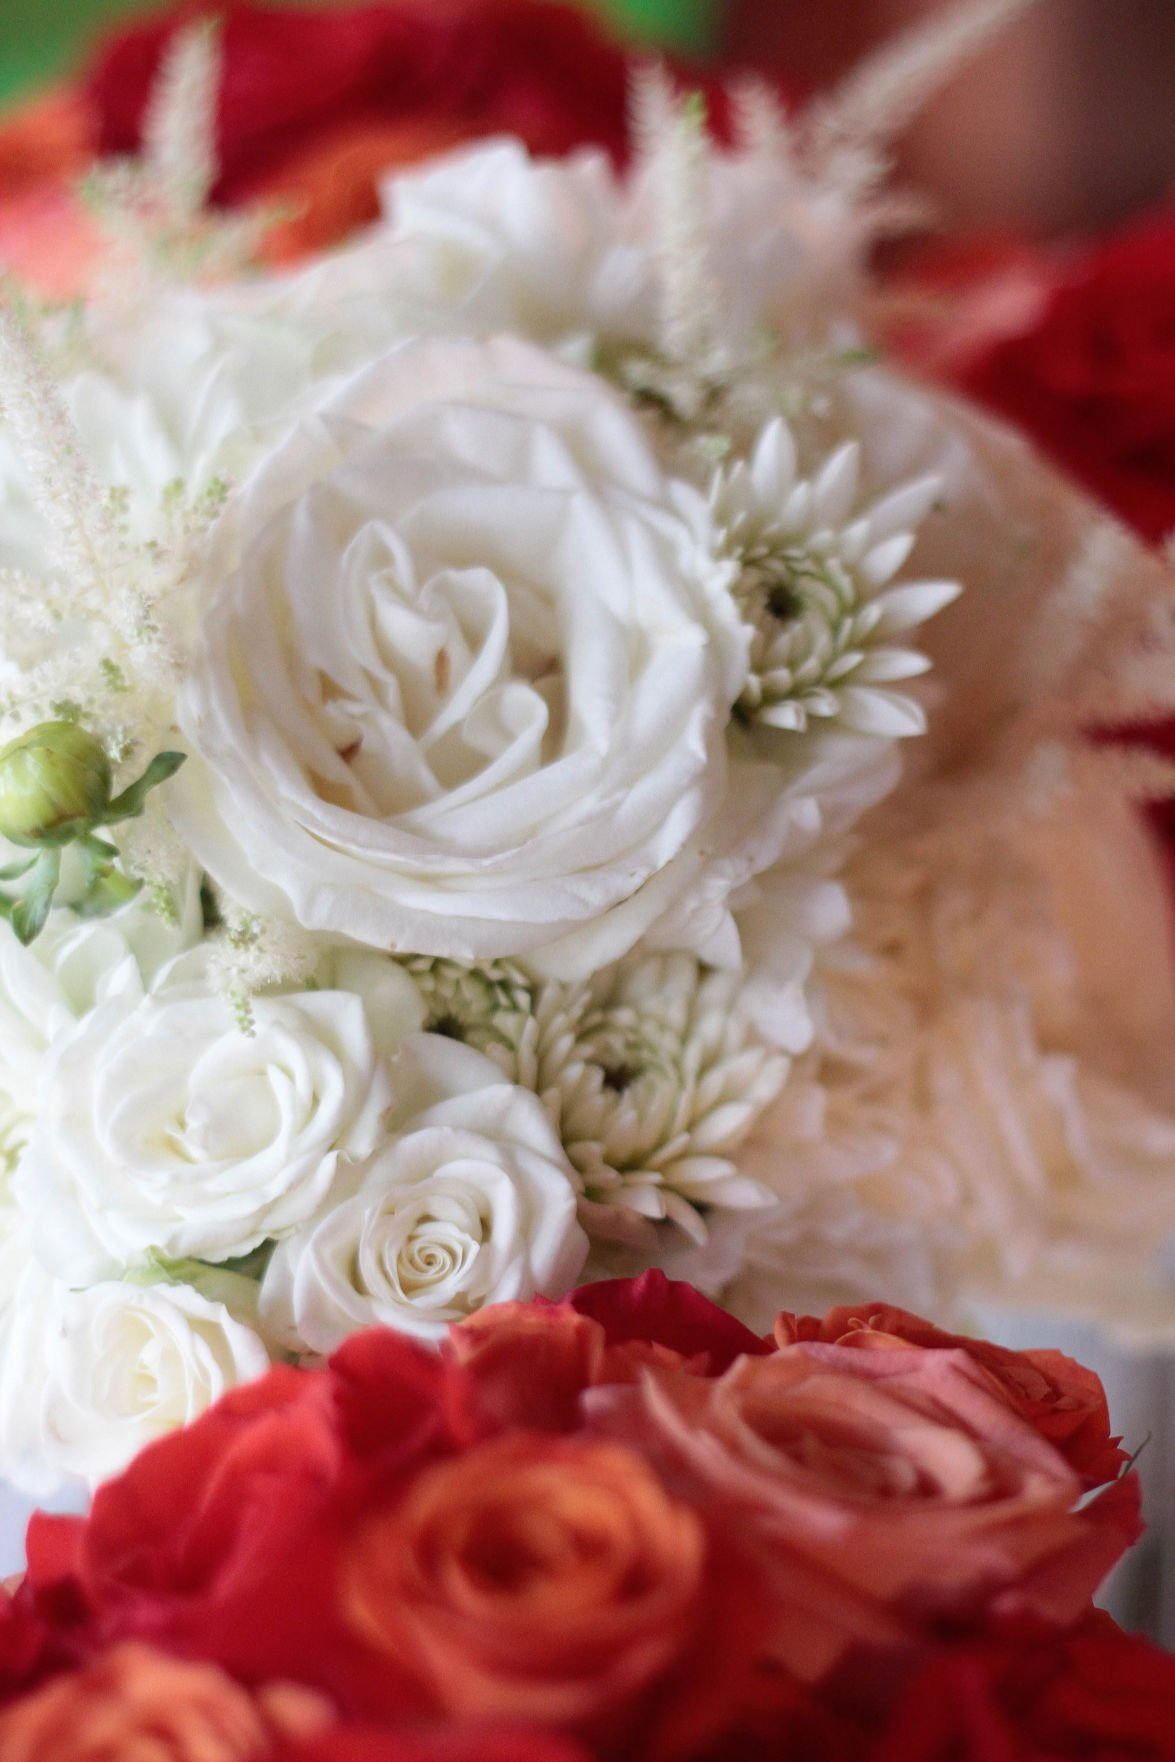 View More: http://blushmagnoliaphotography.pass.us/bobbyandbrianagetmarried